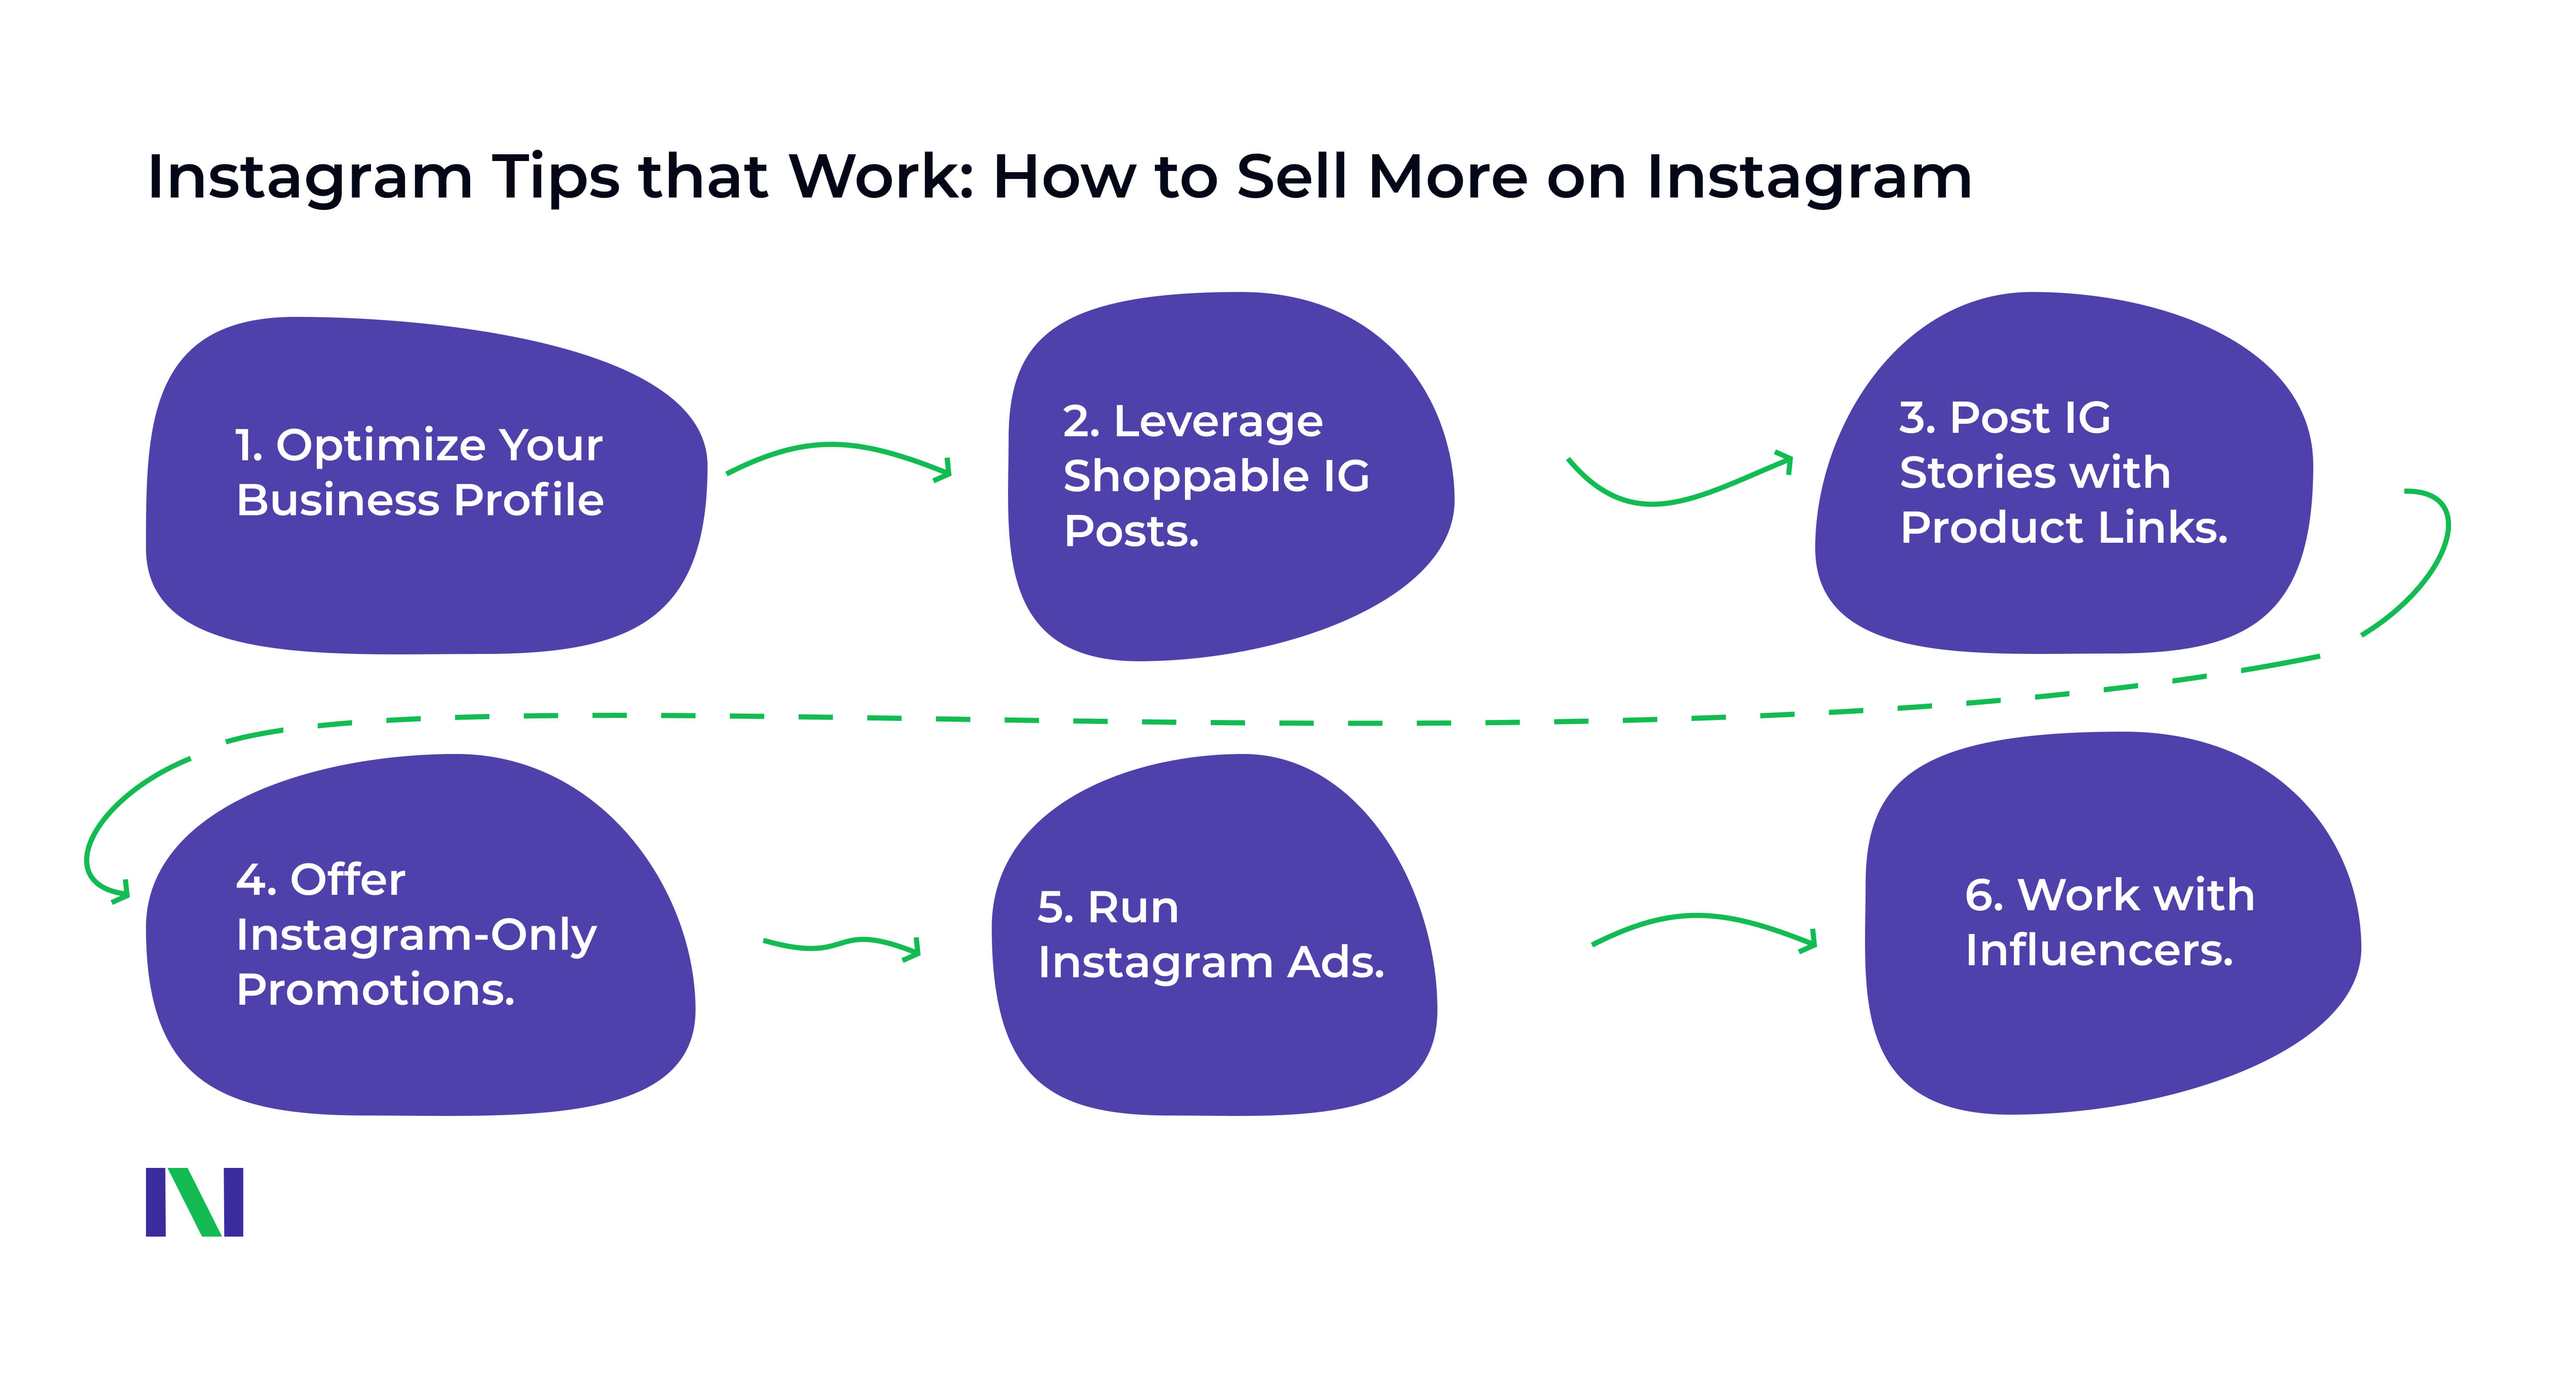 Infographics. Instagram Tips on how to sell more